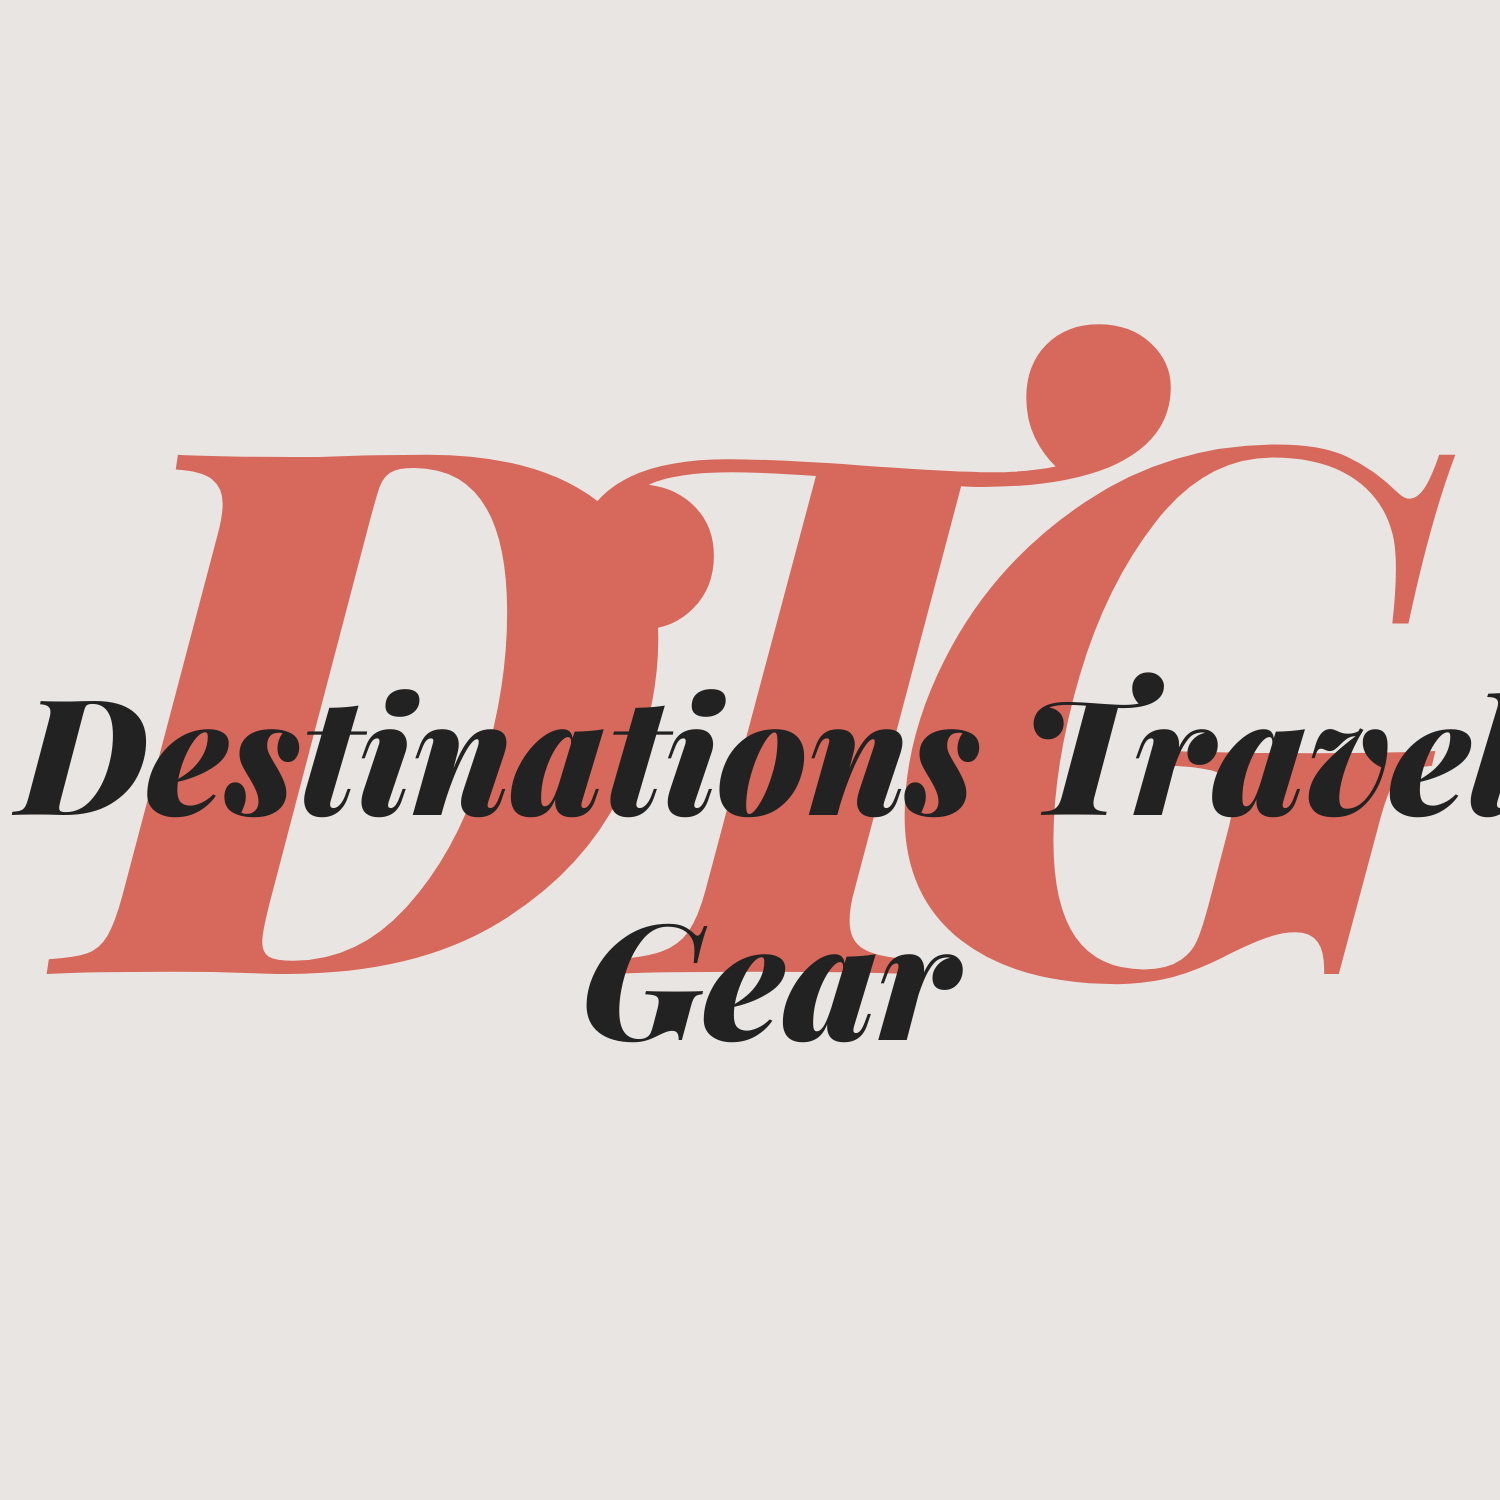 Travel Blog in India | Travel Bloggers in India | Destinations Travel Gear